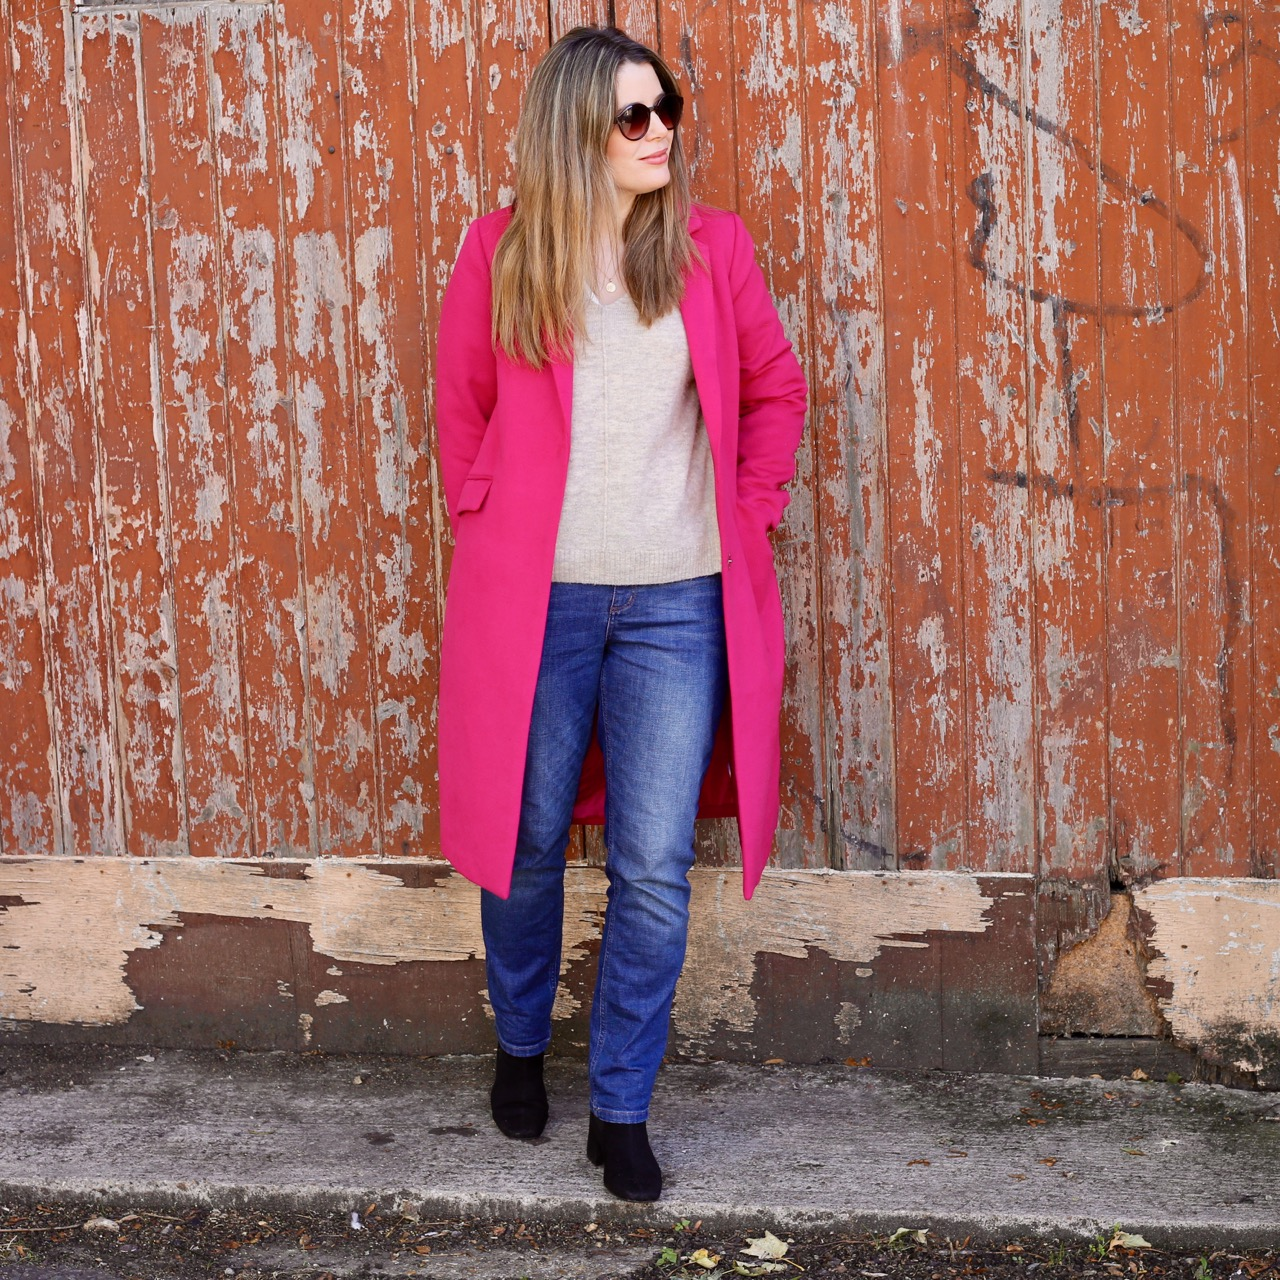 Pink coat and jeans